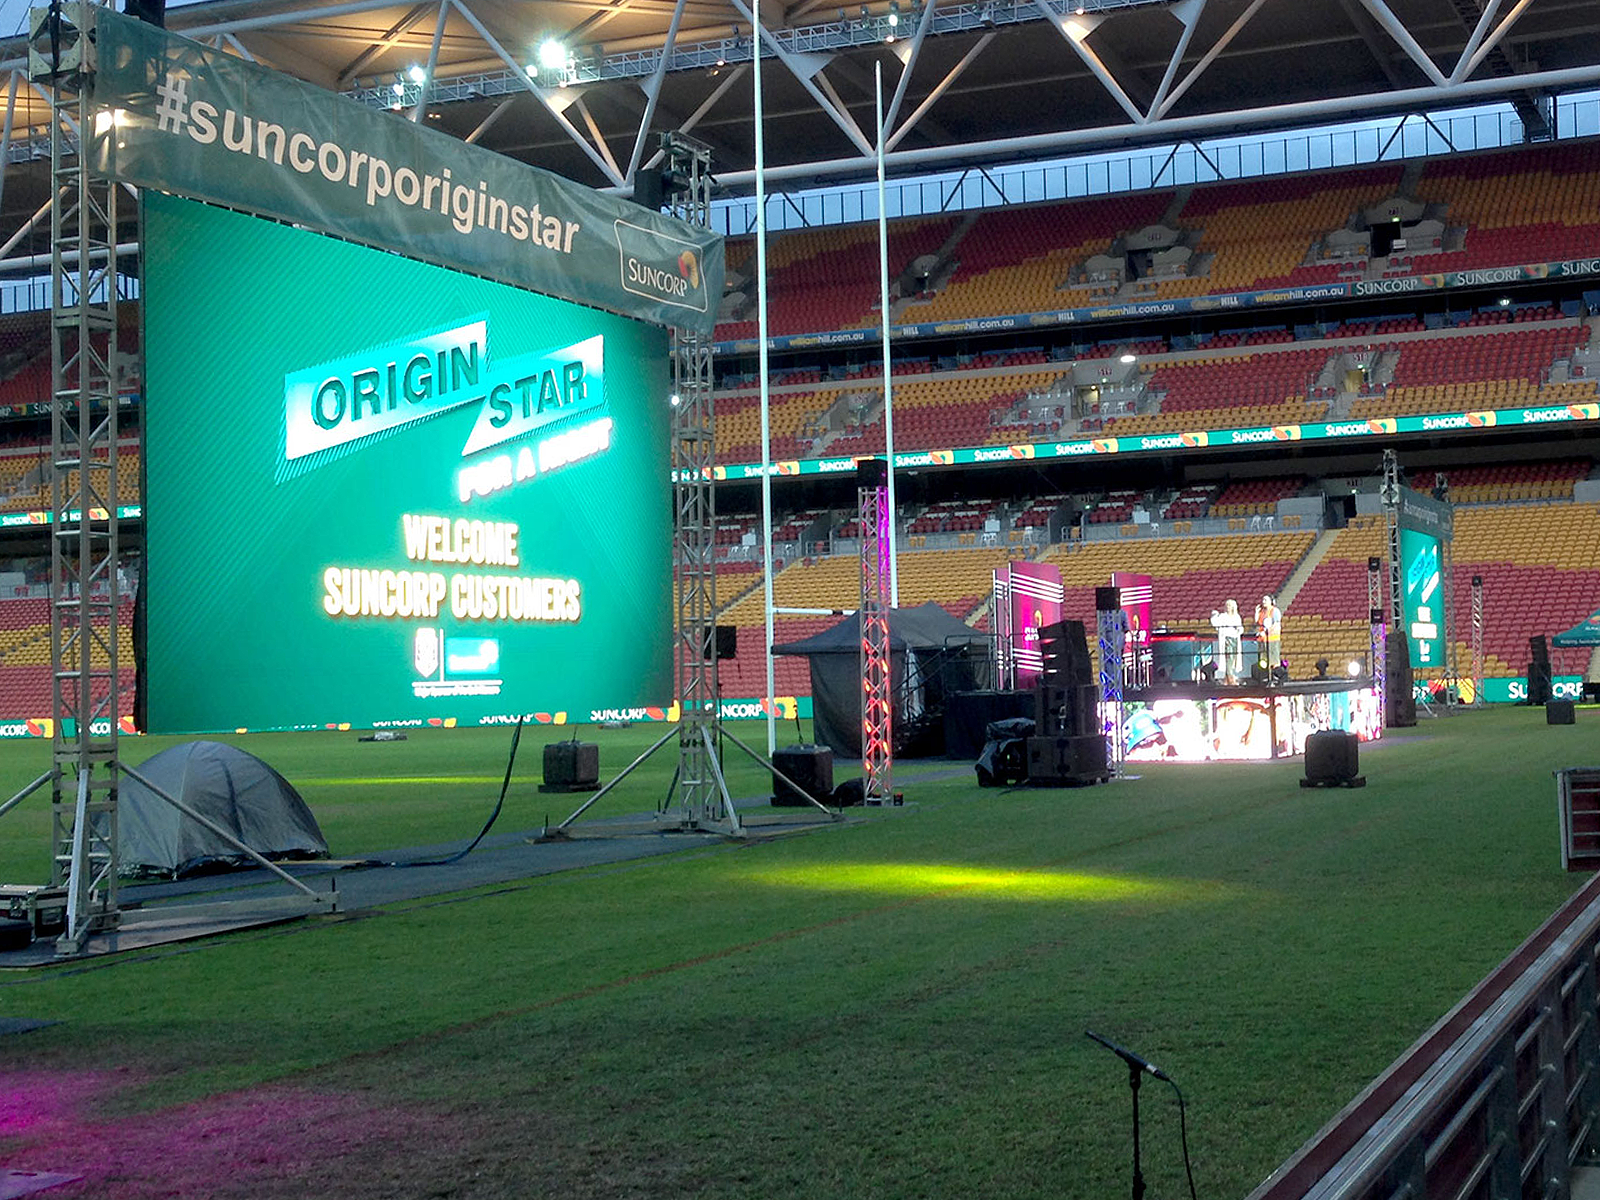 led vision suncorp origin star 2016